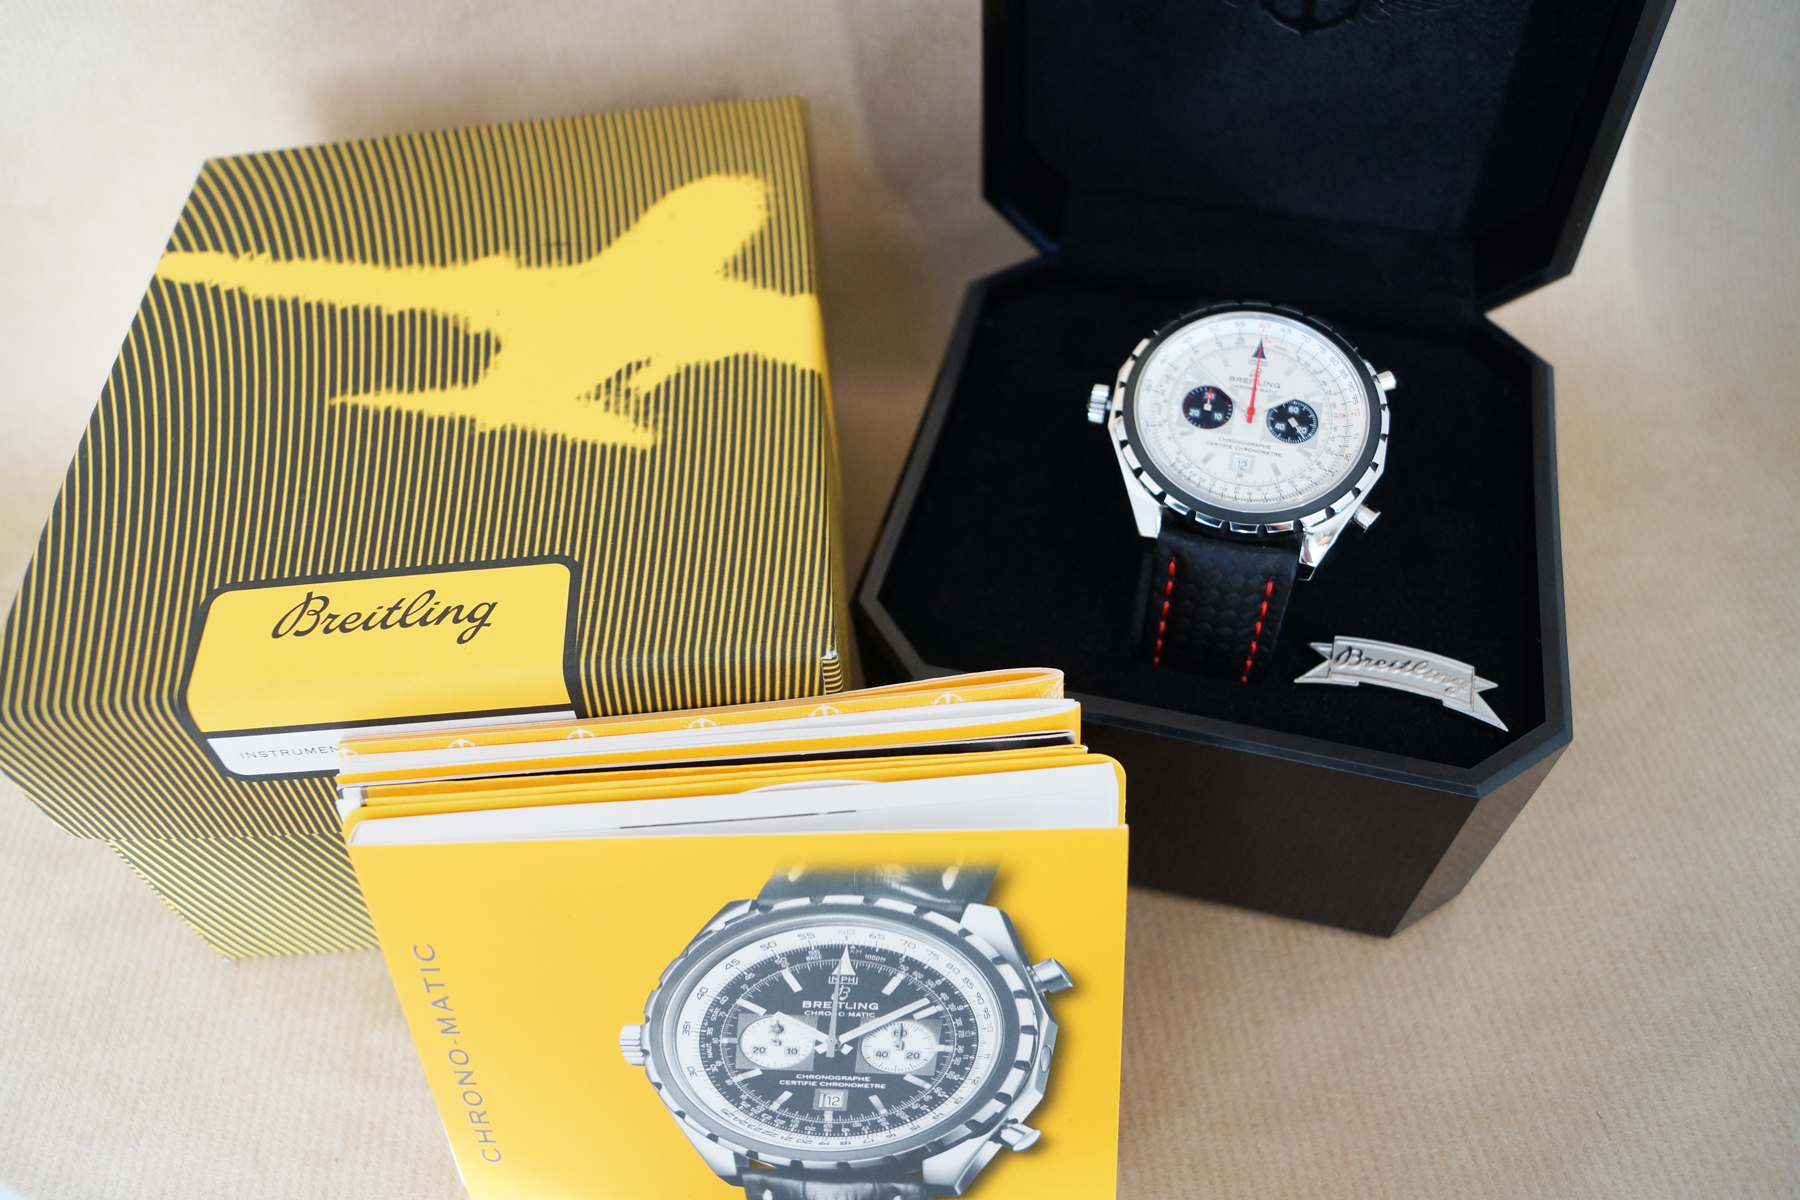 Breitling-A41360LC-Silver-Dial1.jpg